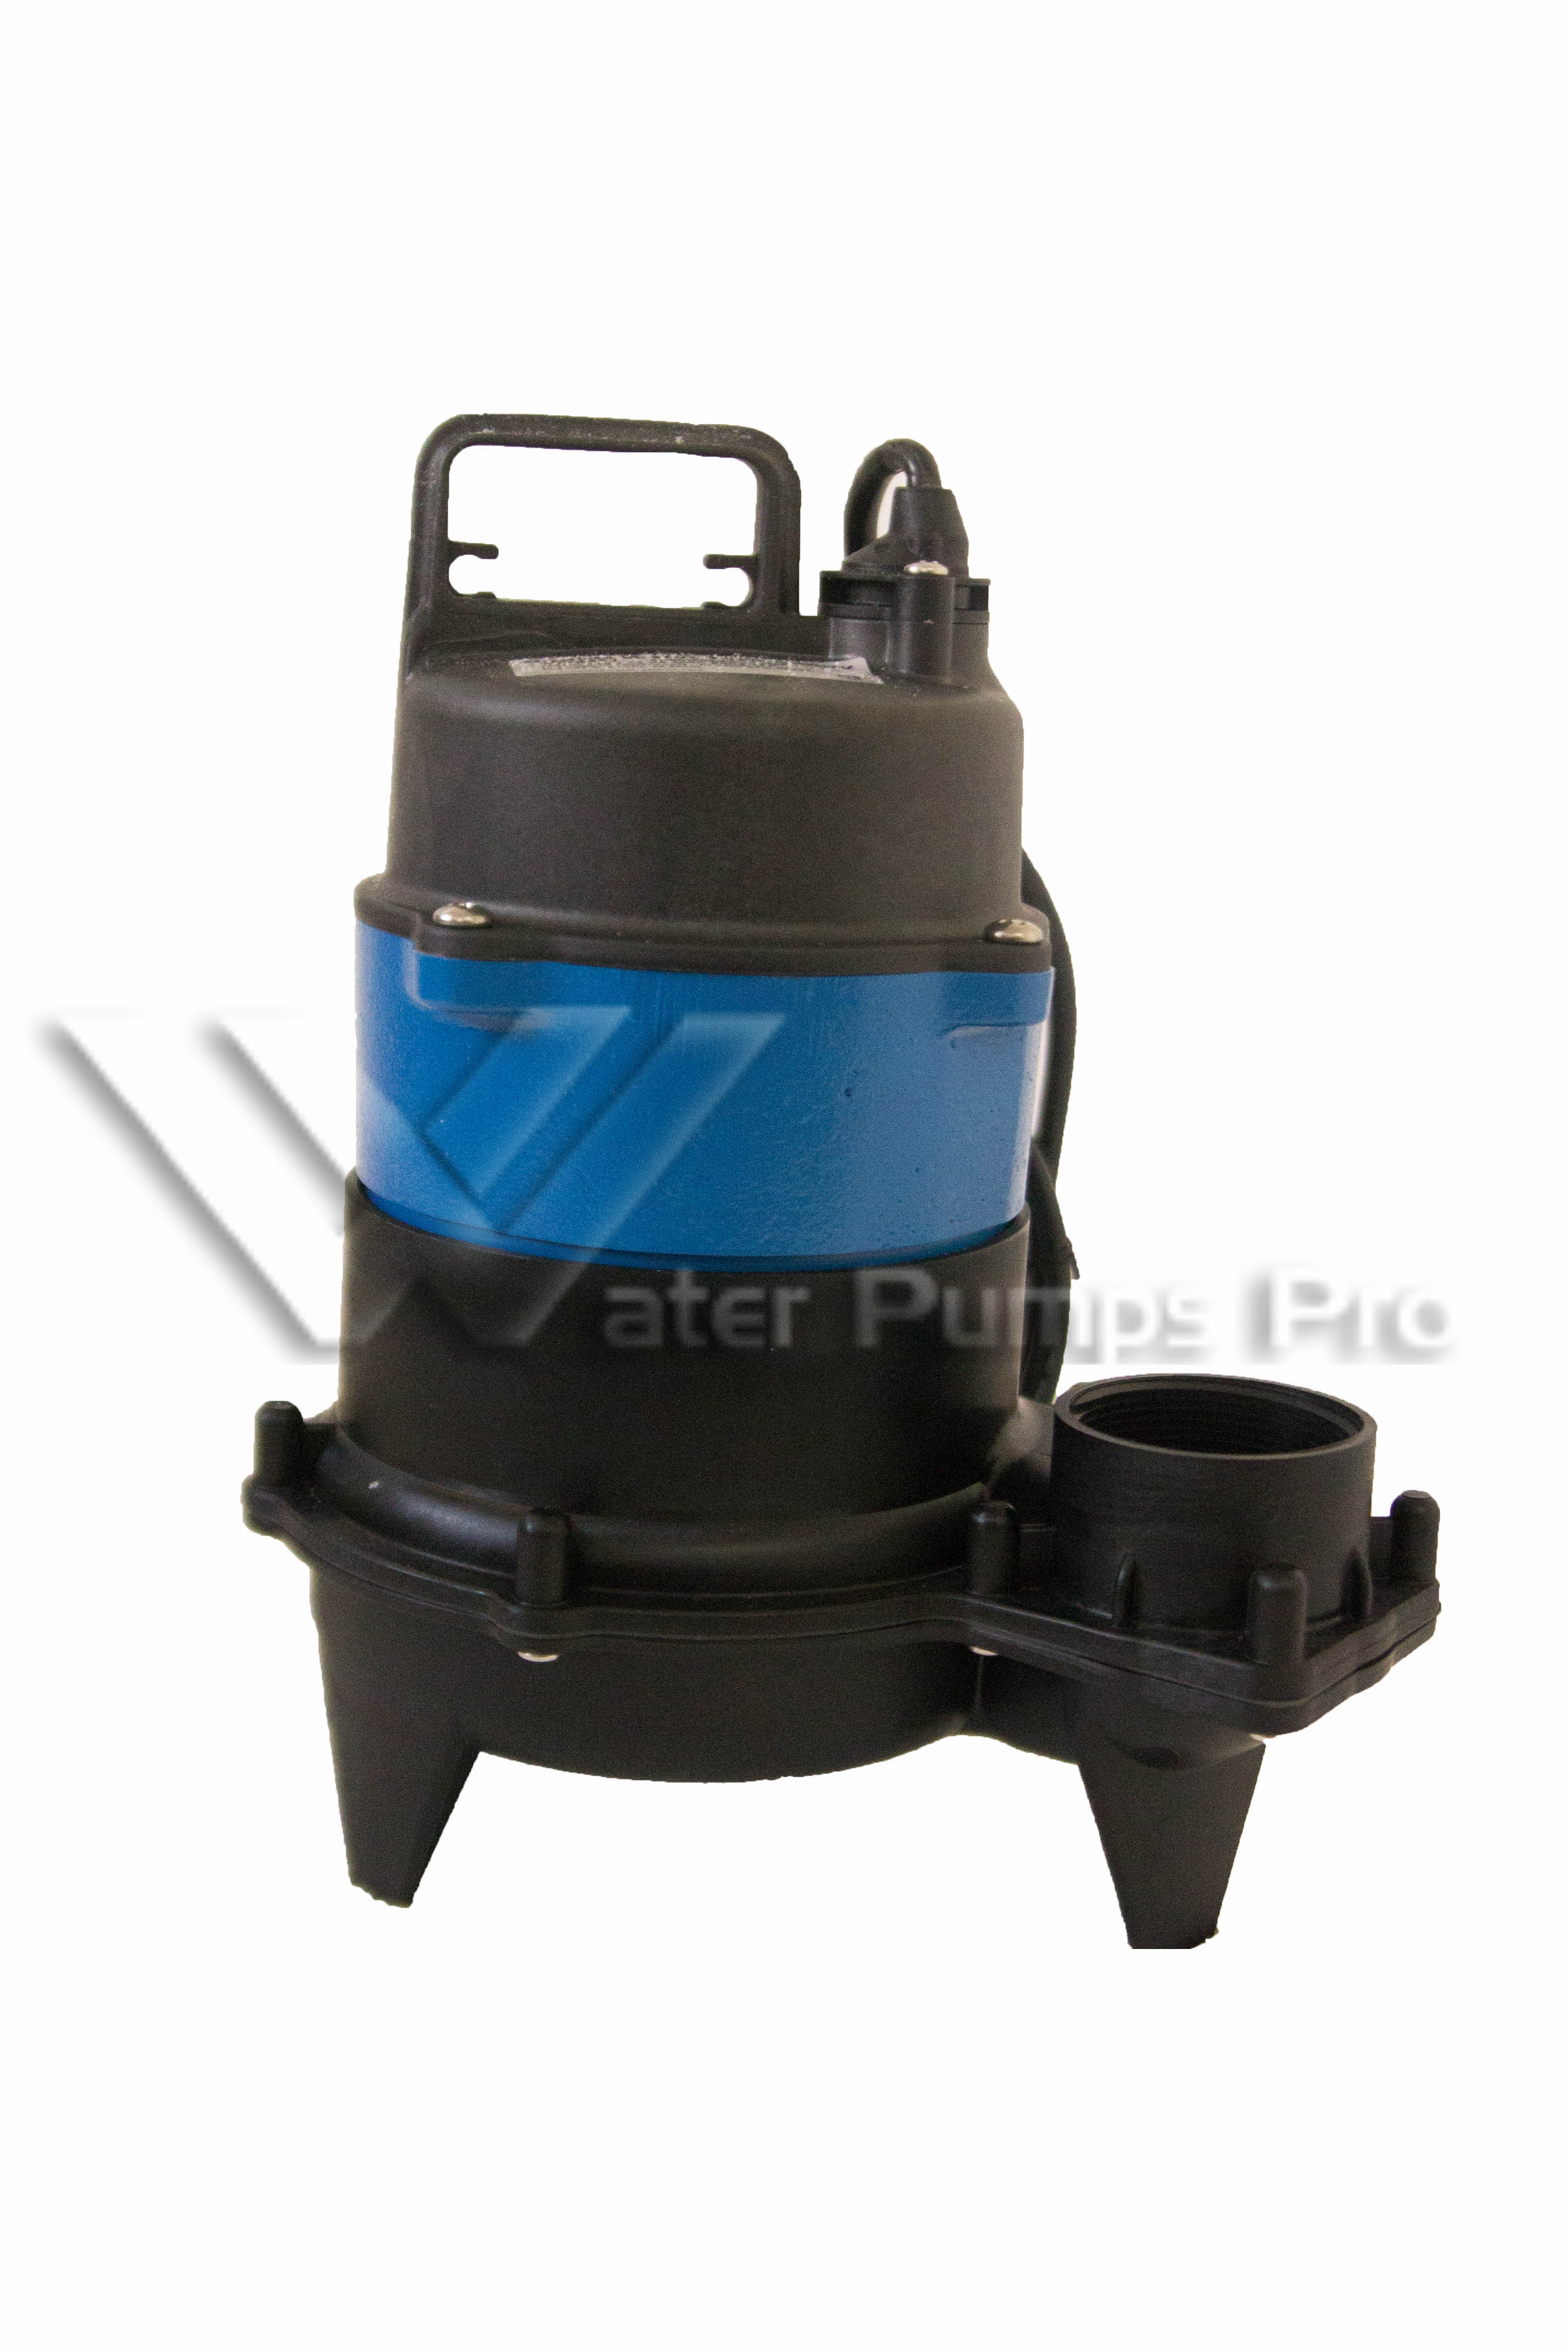 Goulds WW0512 Sub Sewage Pump 1/2HP 230V 1 Phase